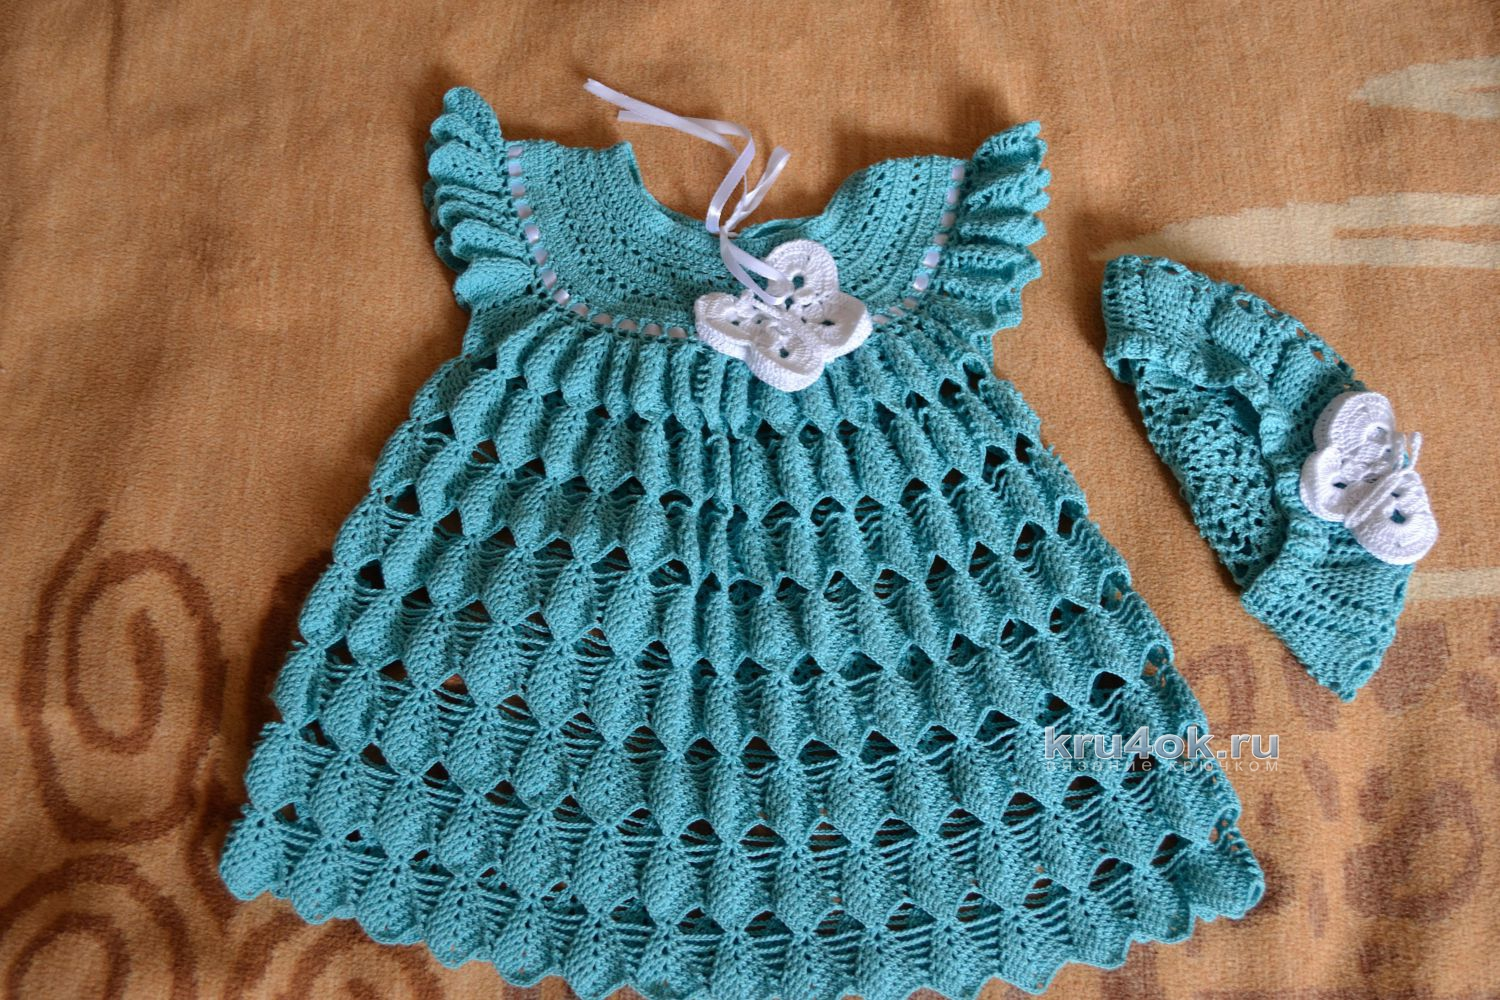 Free crochet patterns to download crochet patterns for free crochet baby dress 1544 bankloansurffo Choice Image